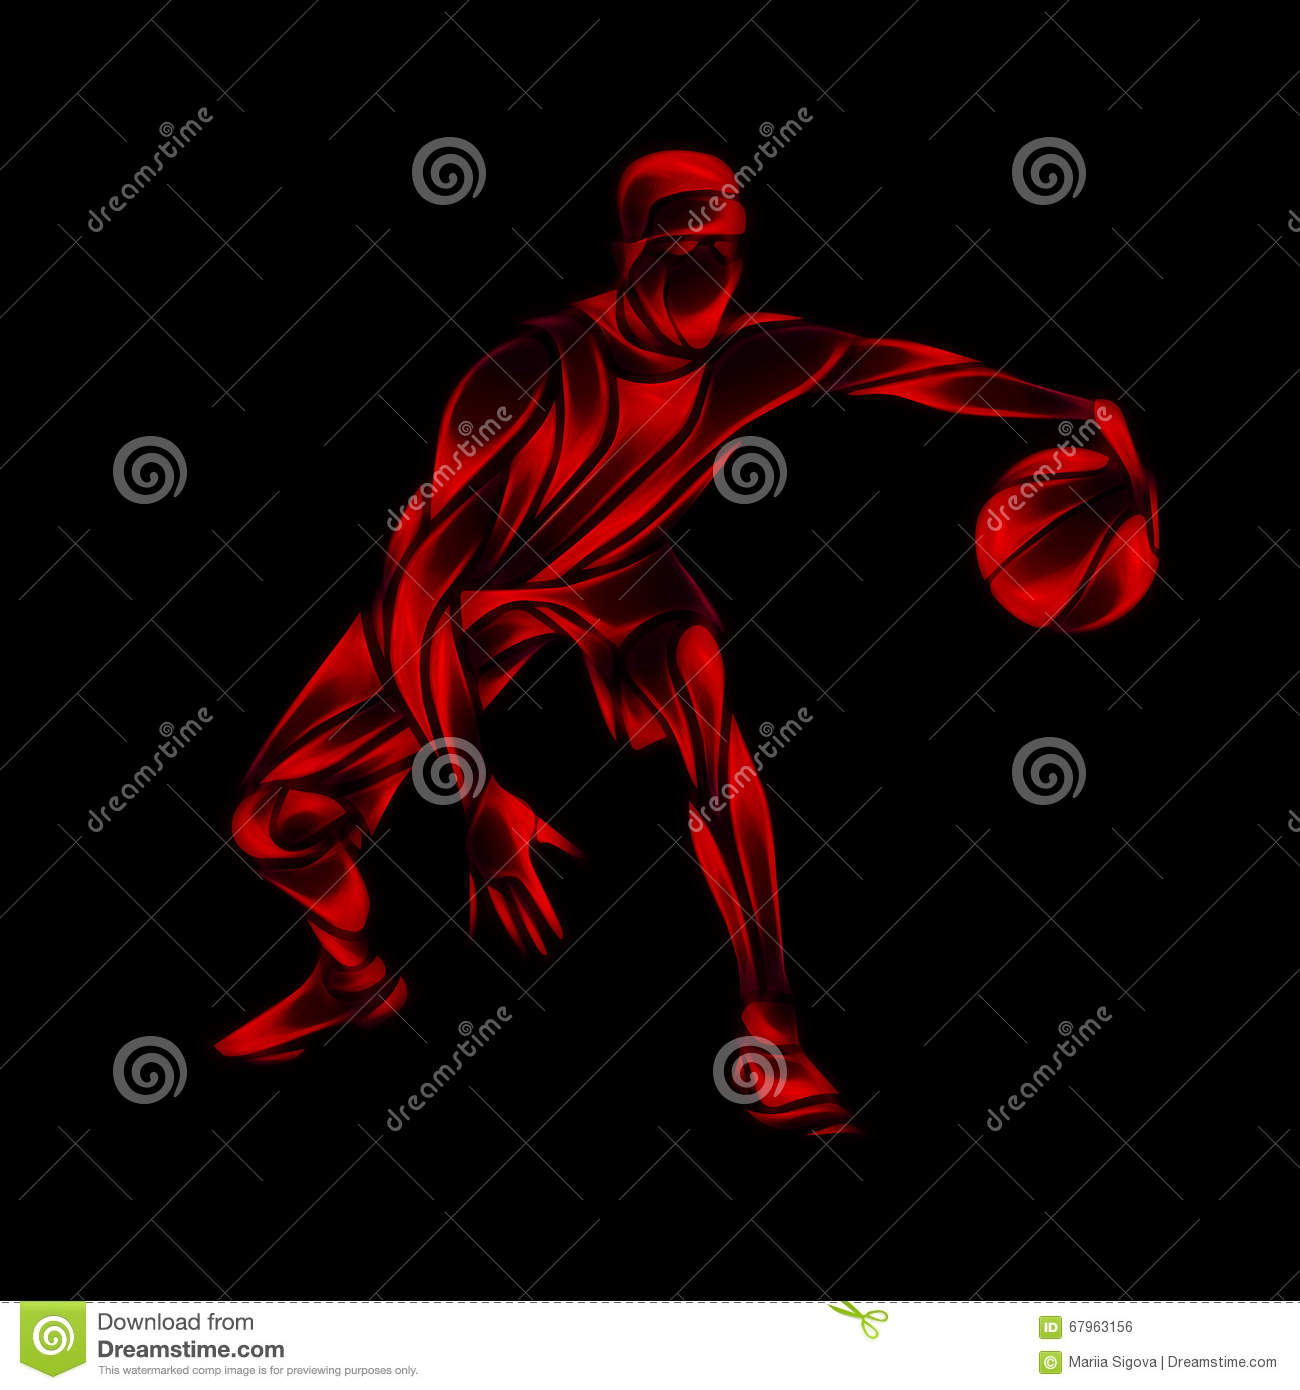 Basketball Player Red Glow Silhouette On Black Stock